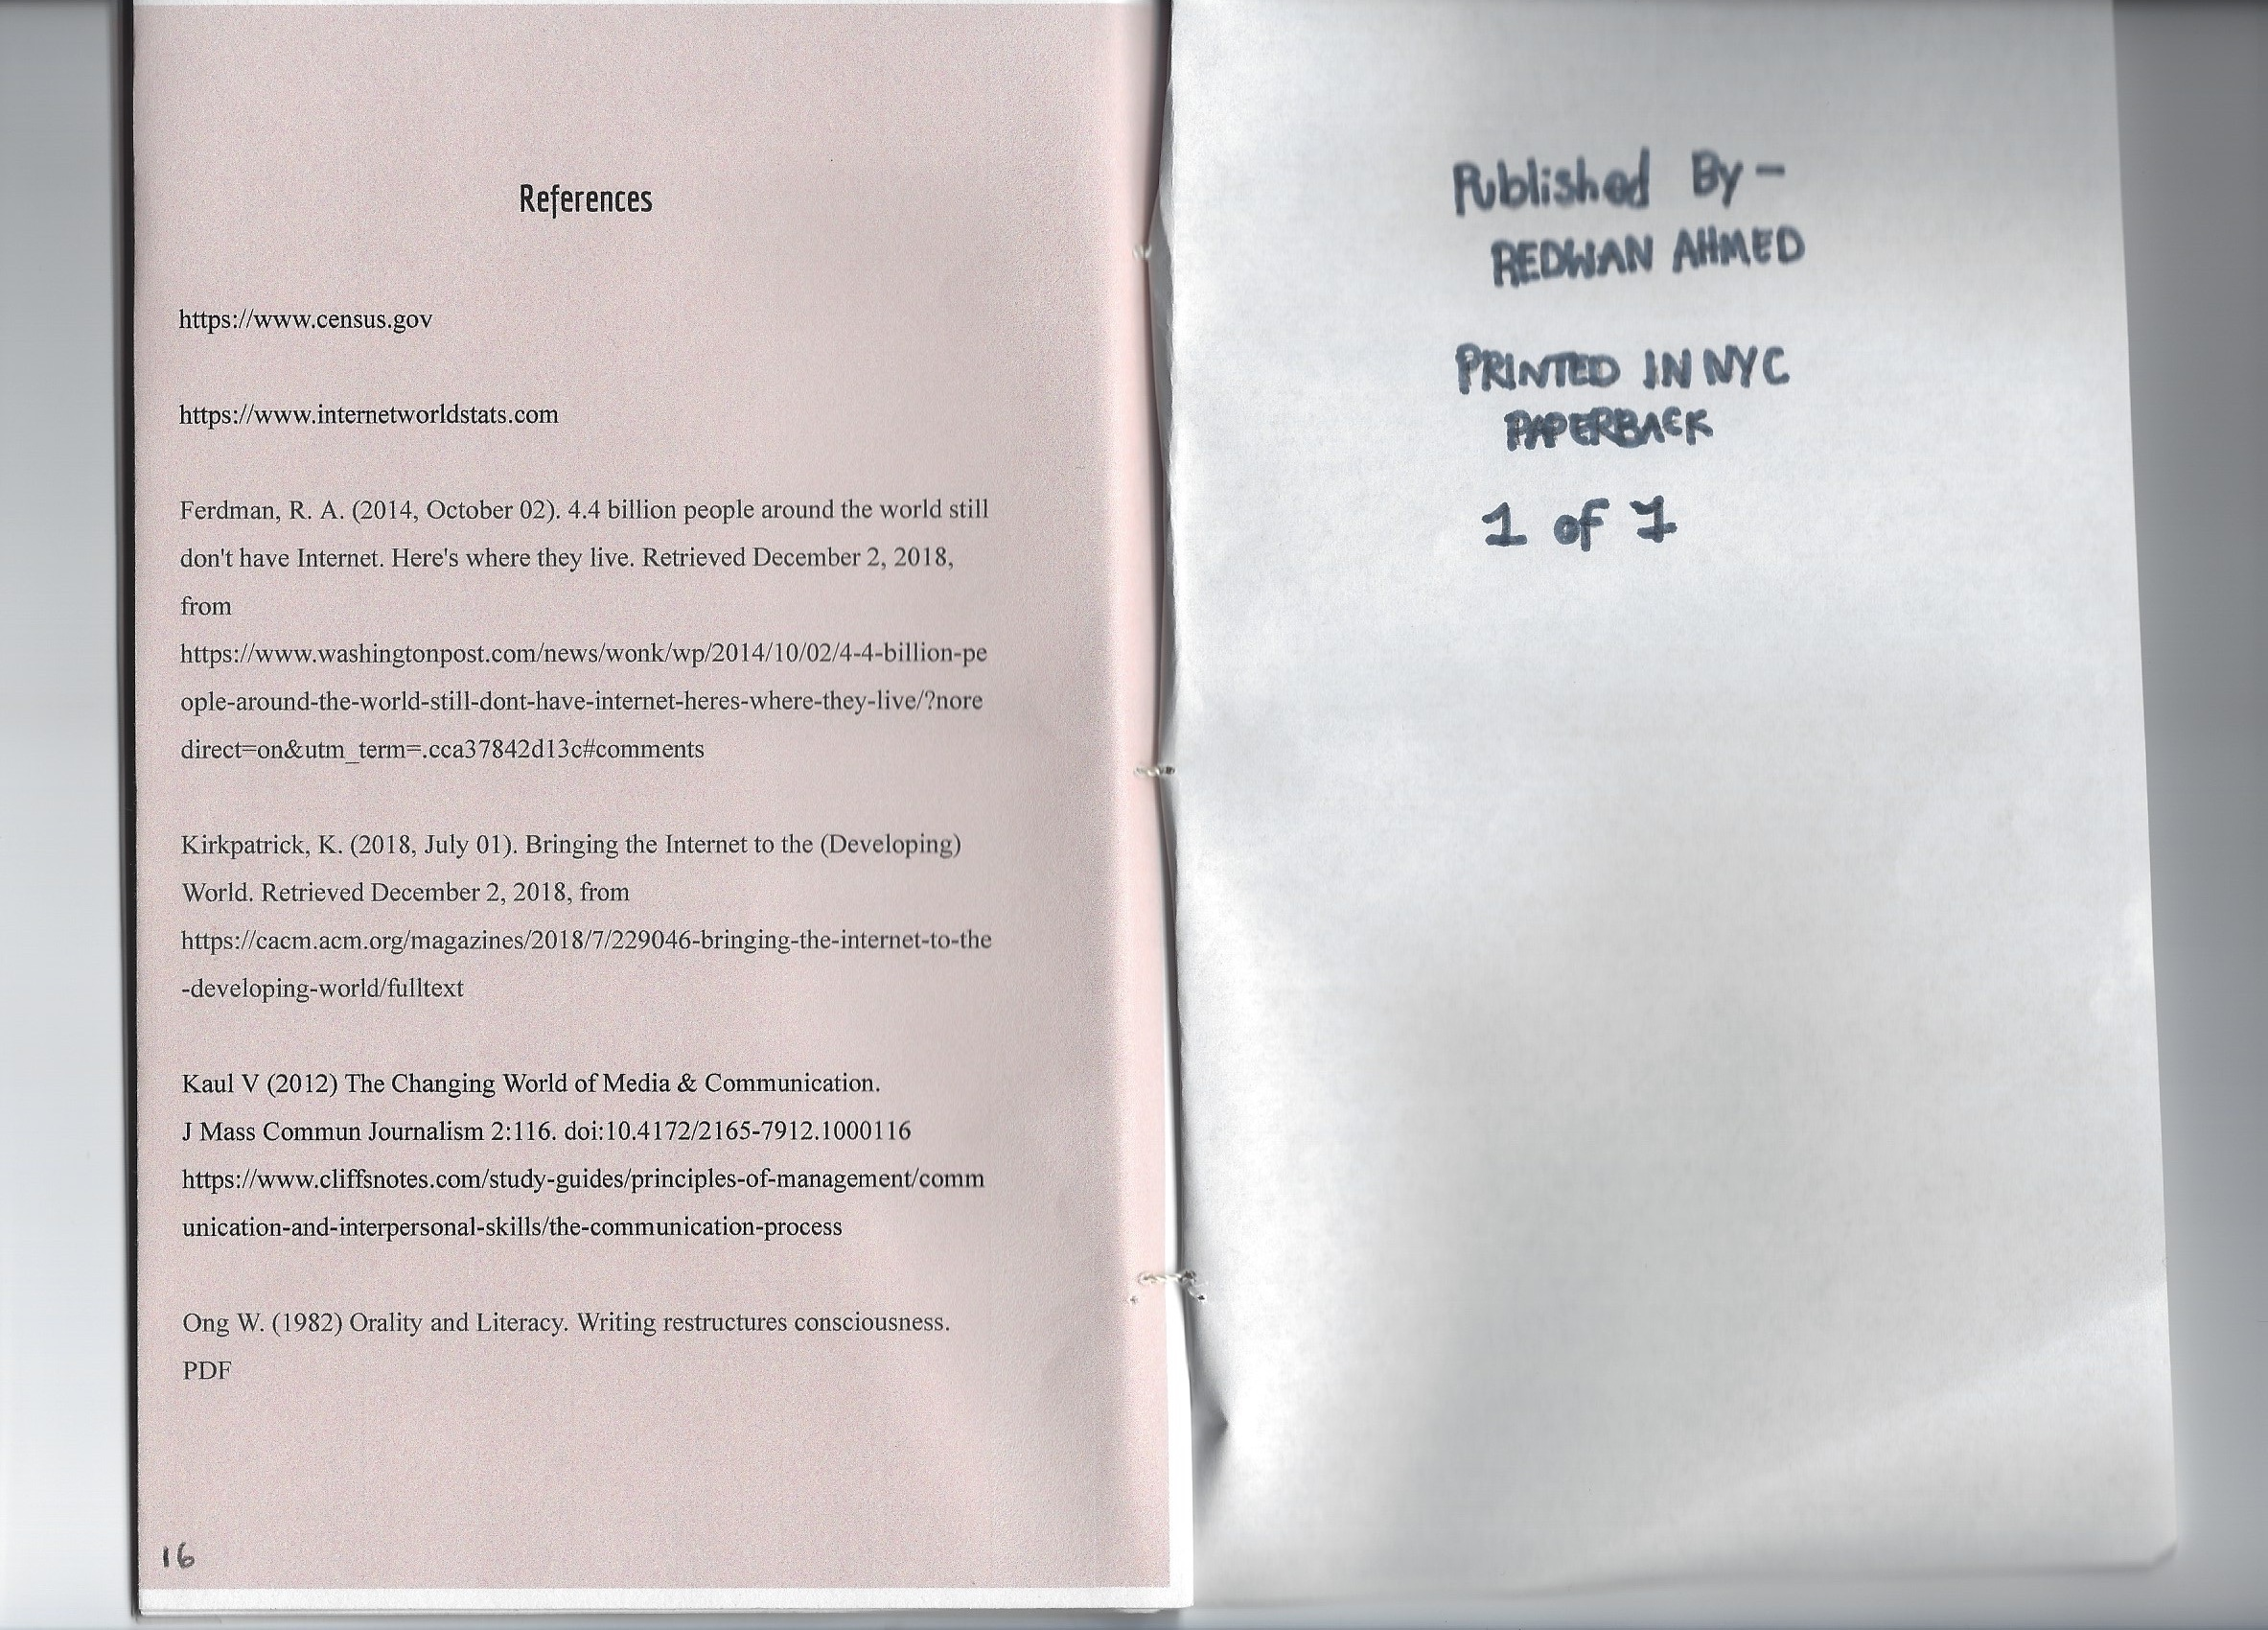 Page 16: Reference/Sources list. Page 17: Information regarding the publisher, print, and number of copies.